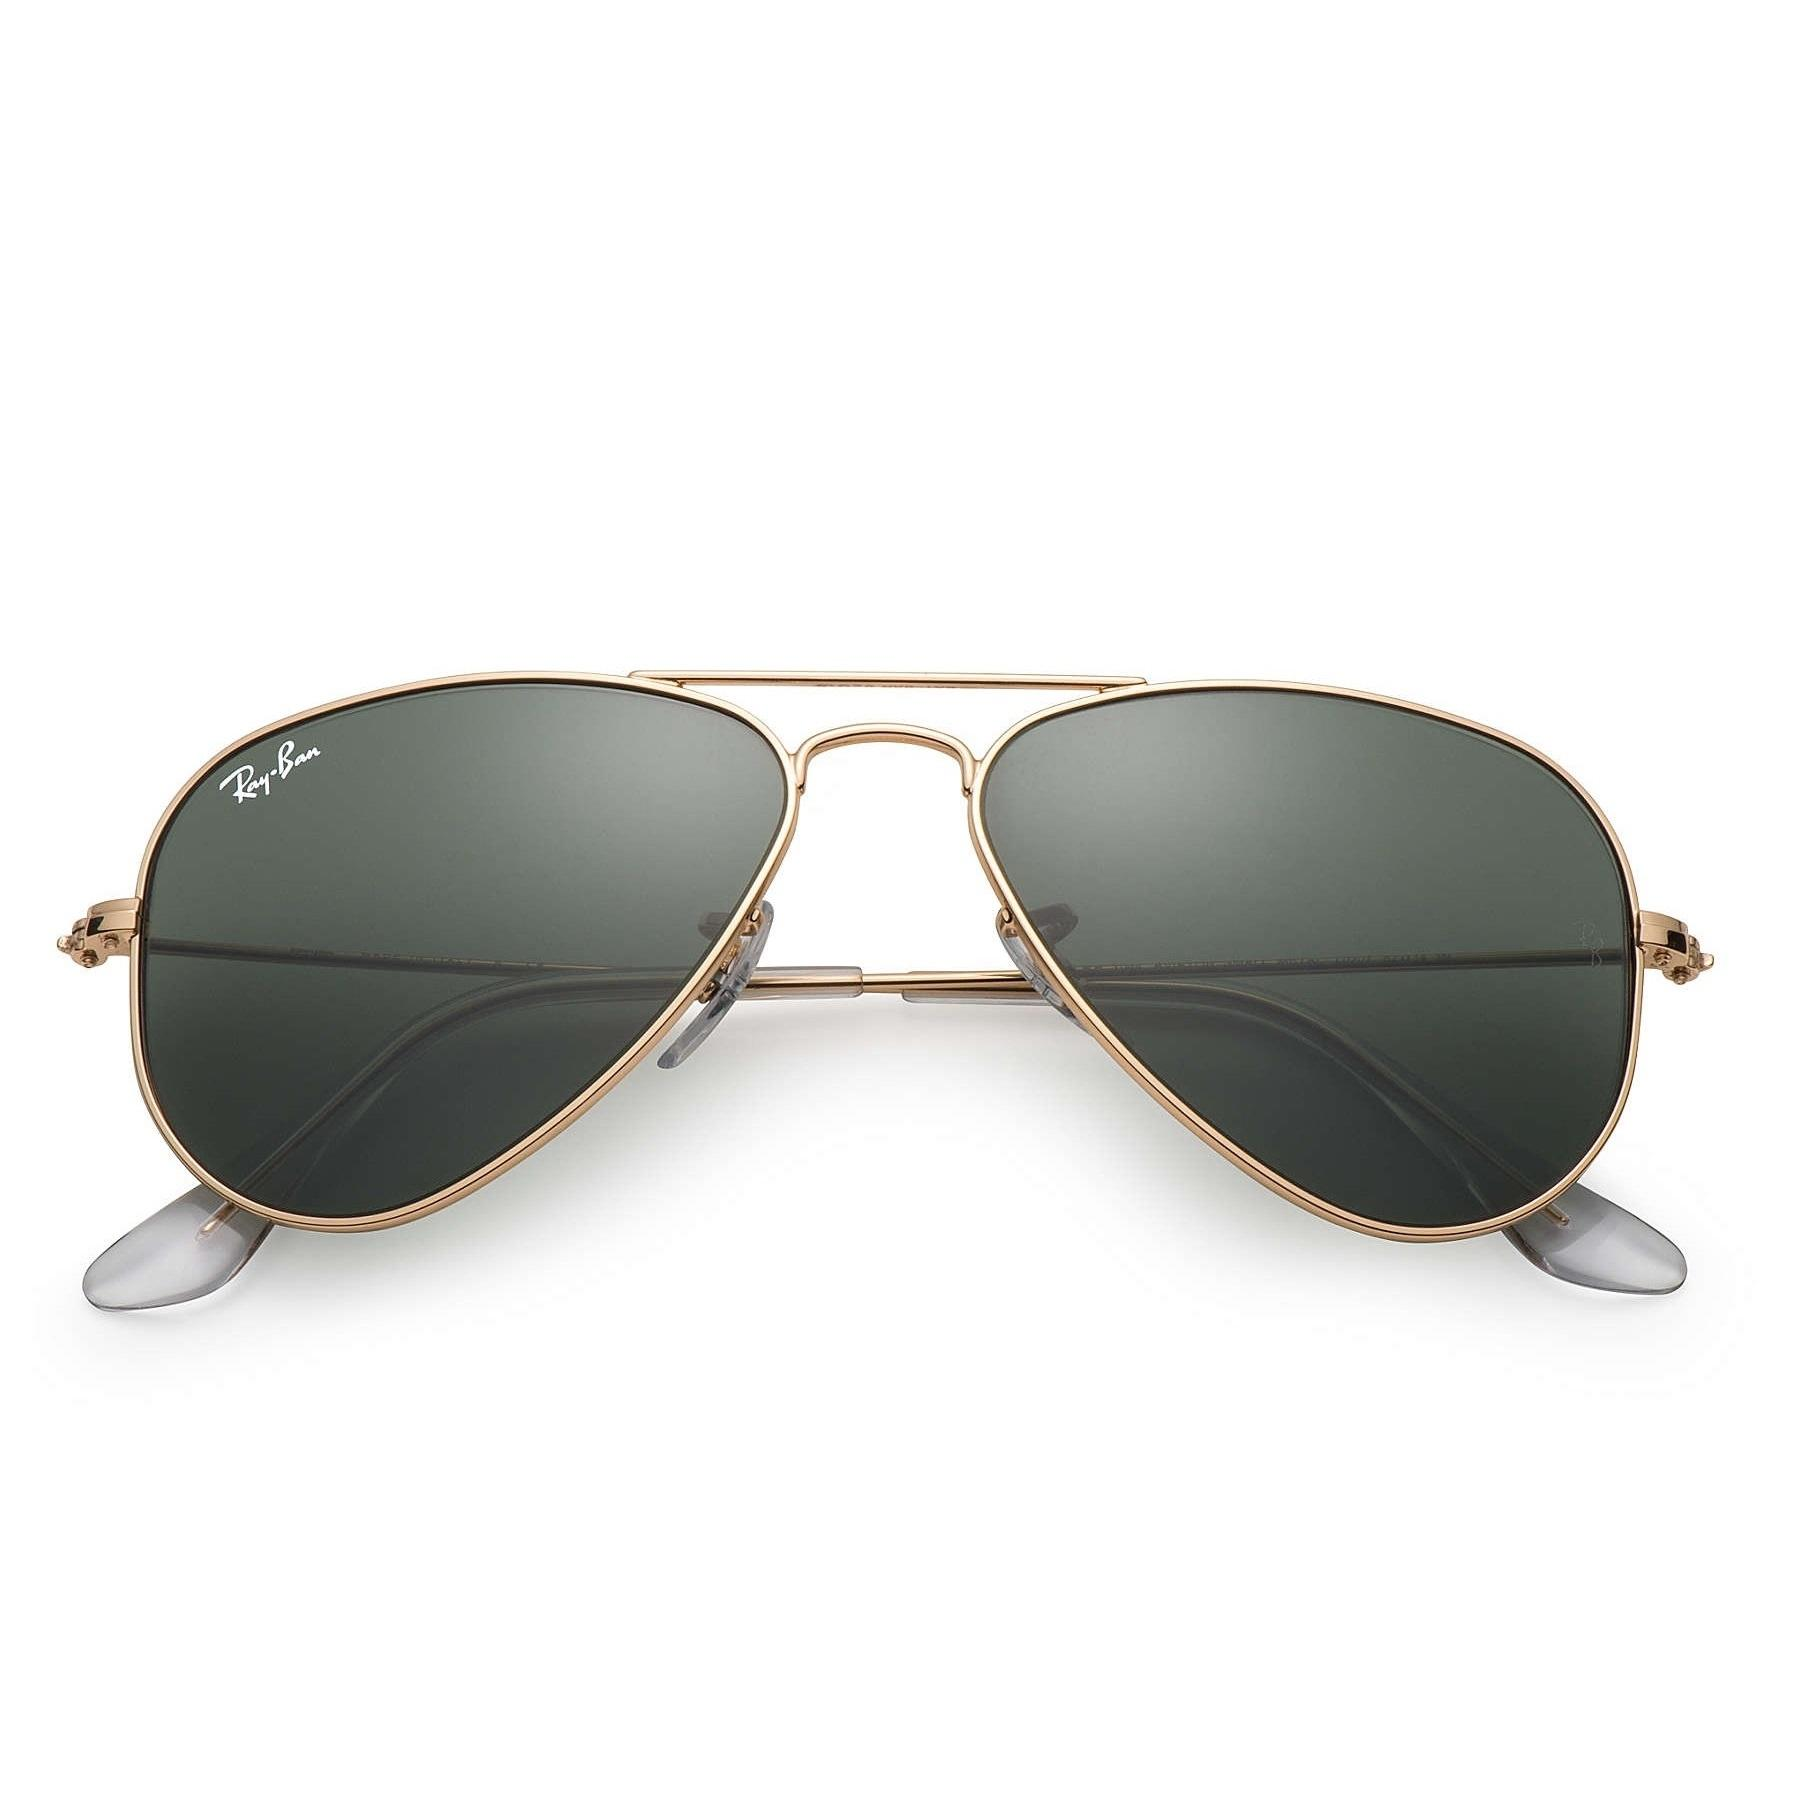 ray ban one day sale 16.99